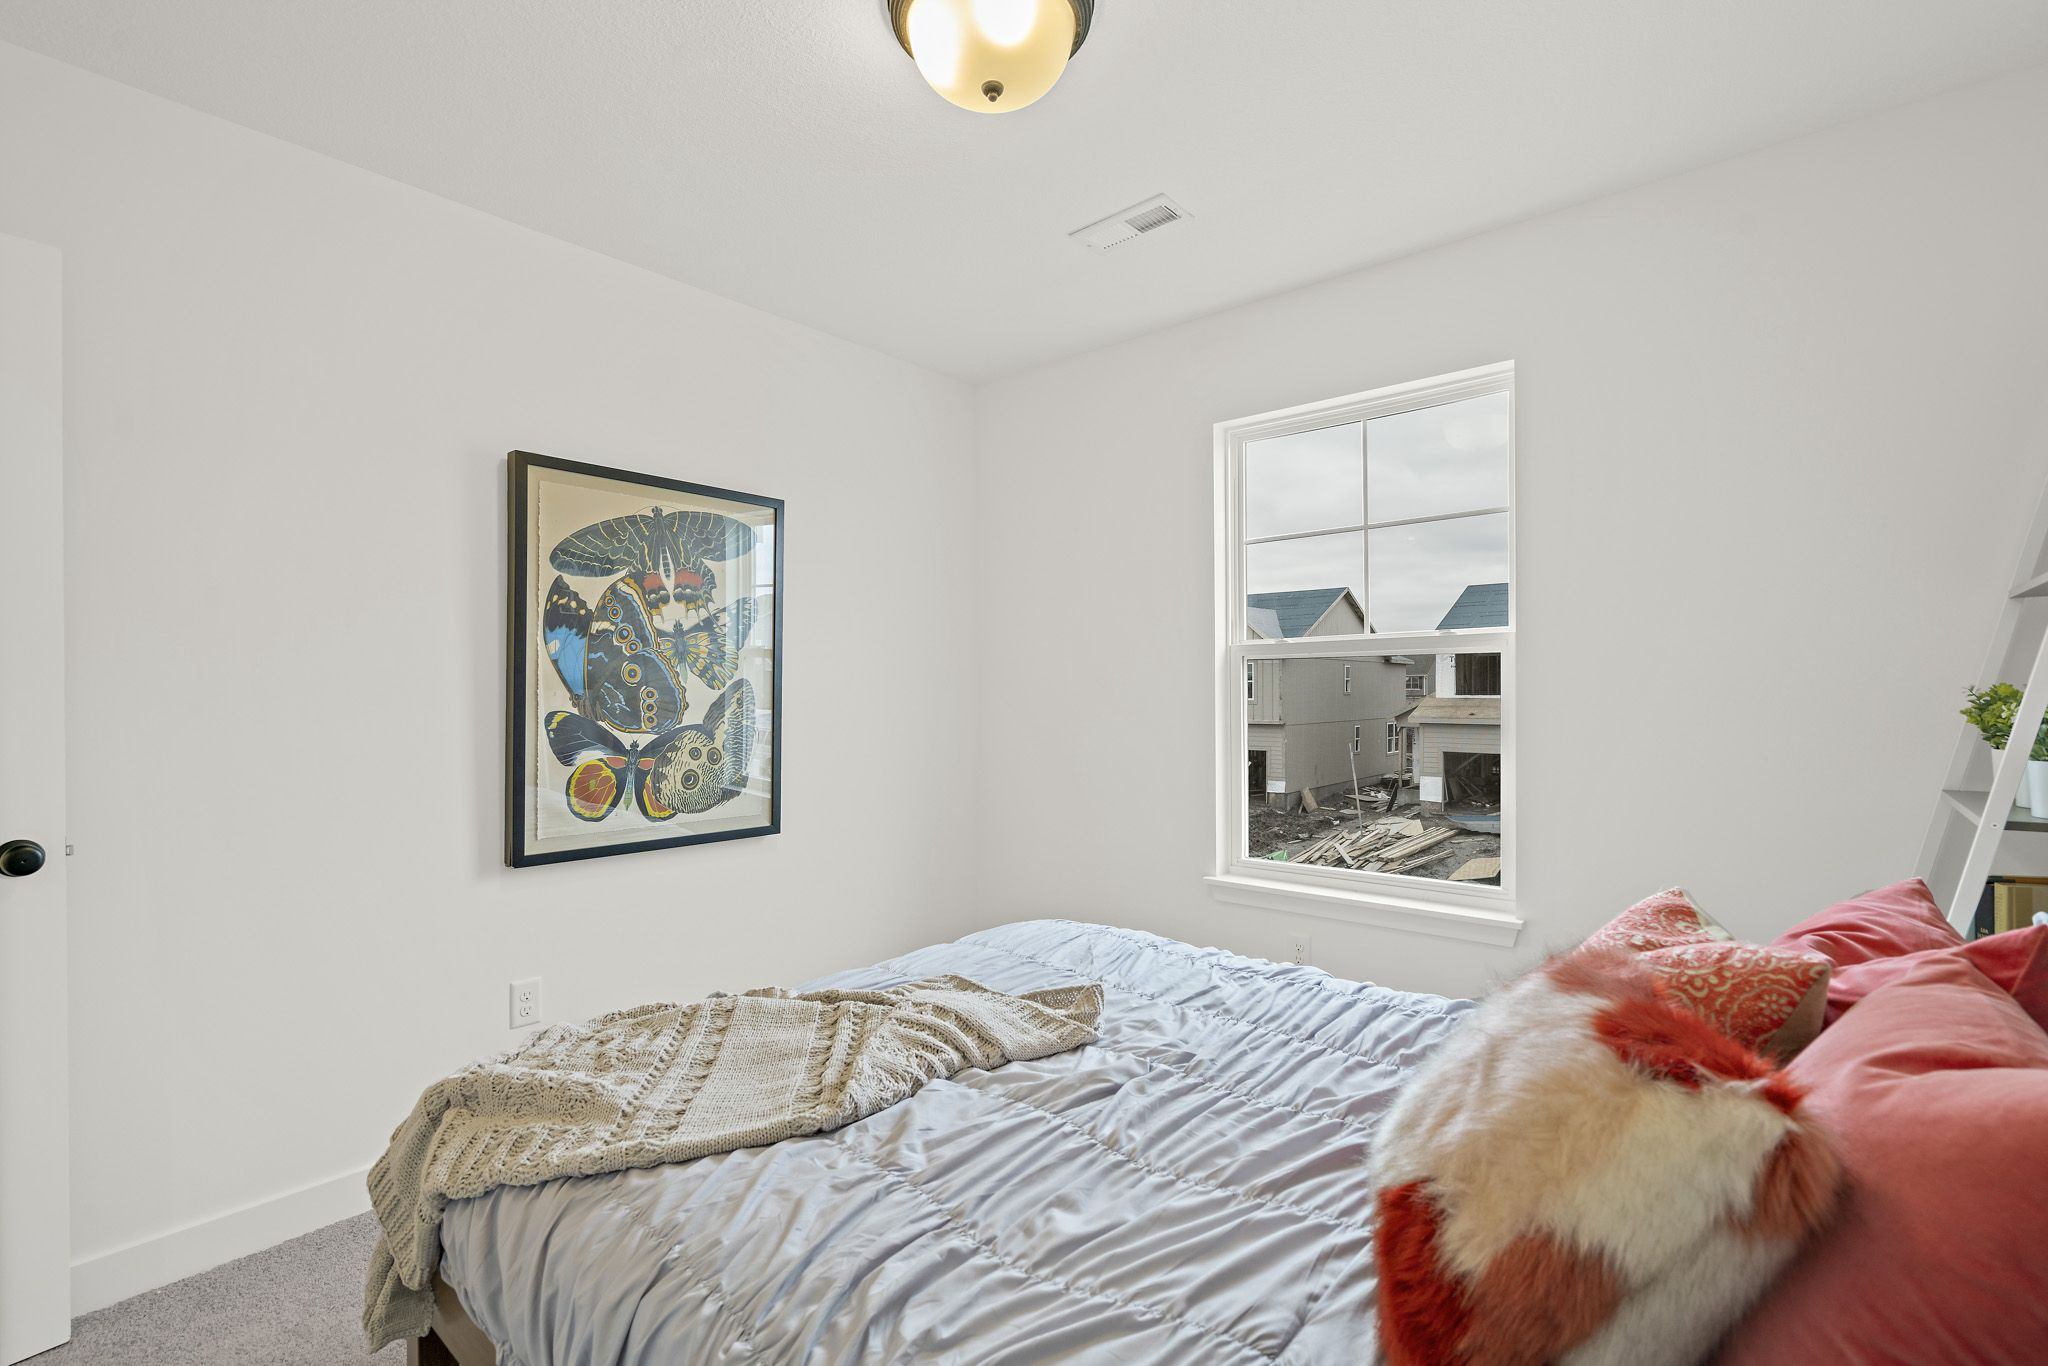 Bedroom featured in the sapphire By clover & hive in Kansas City, MO